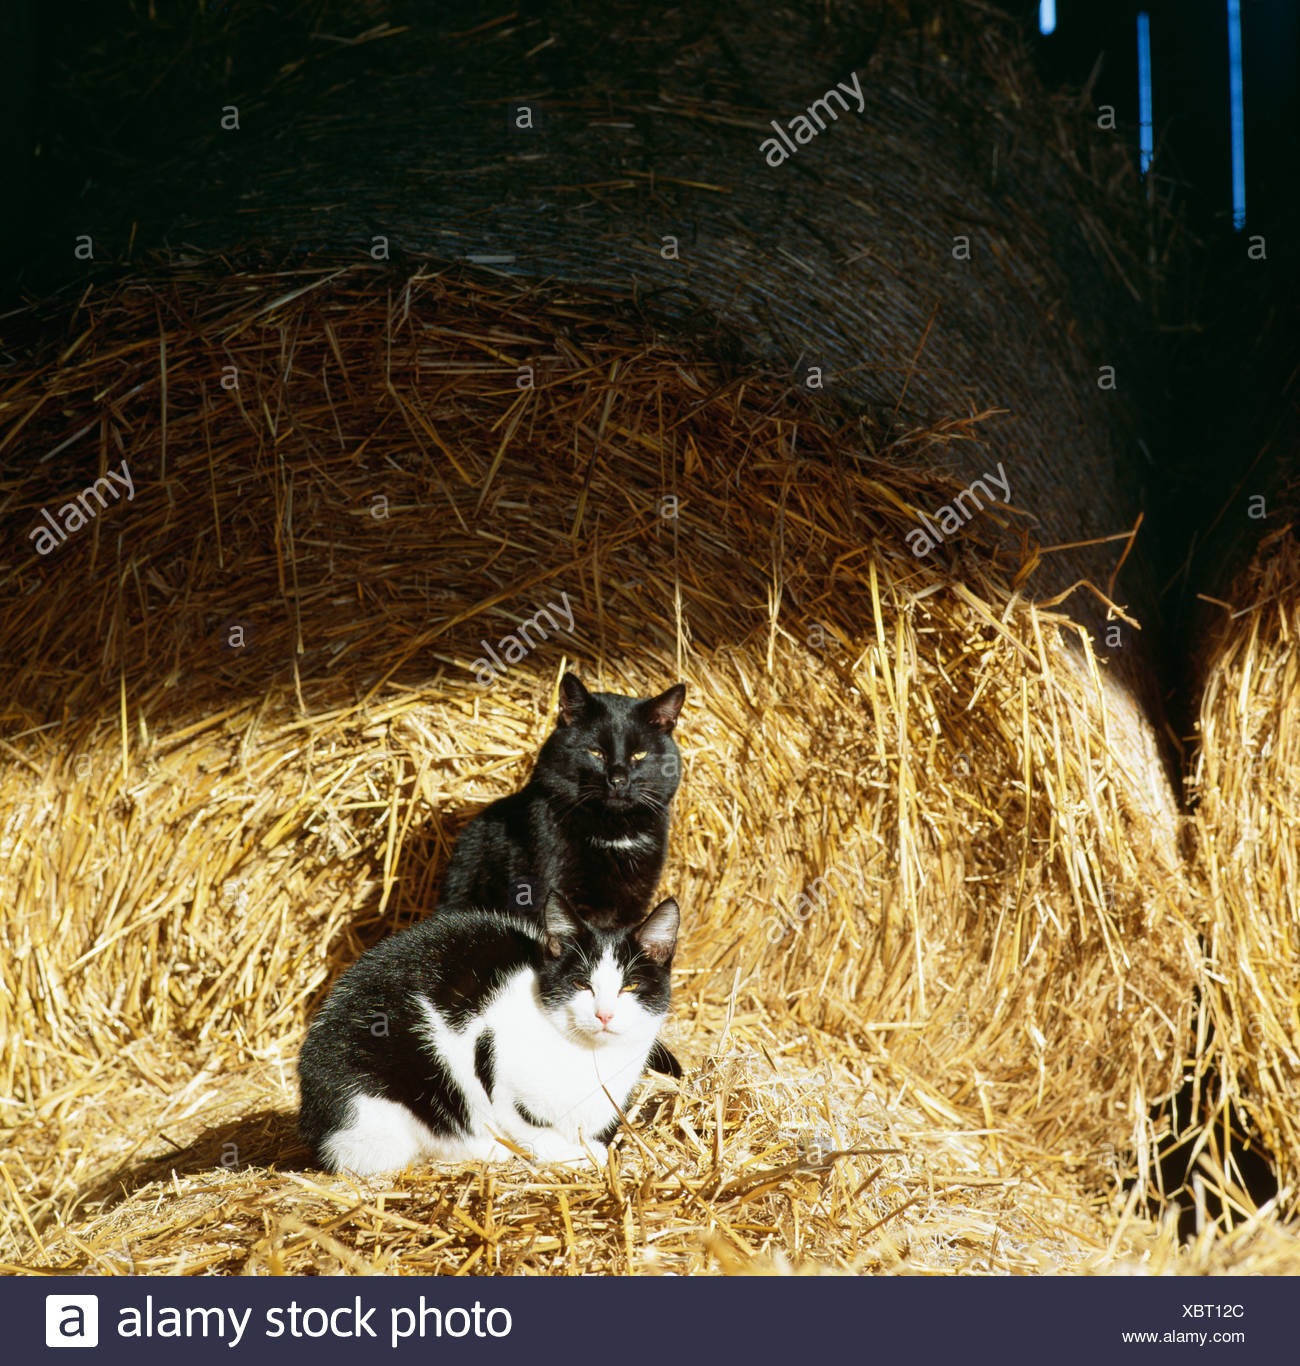 Cats at a farm, Sweden. - Stock Image